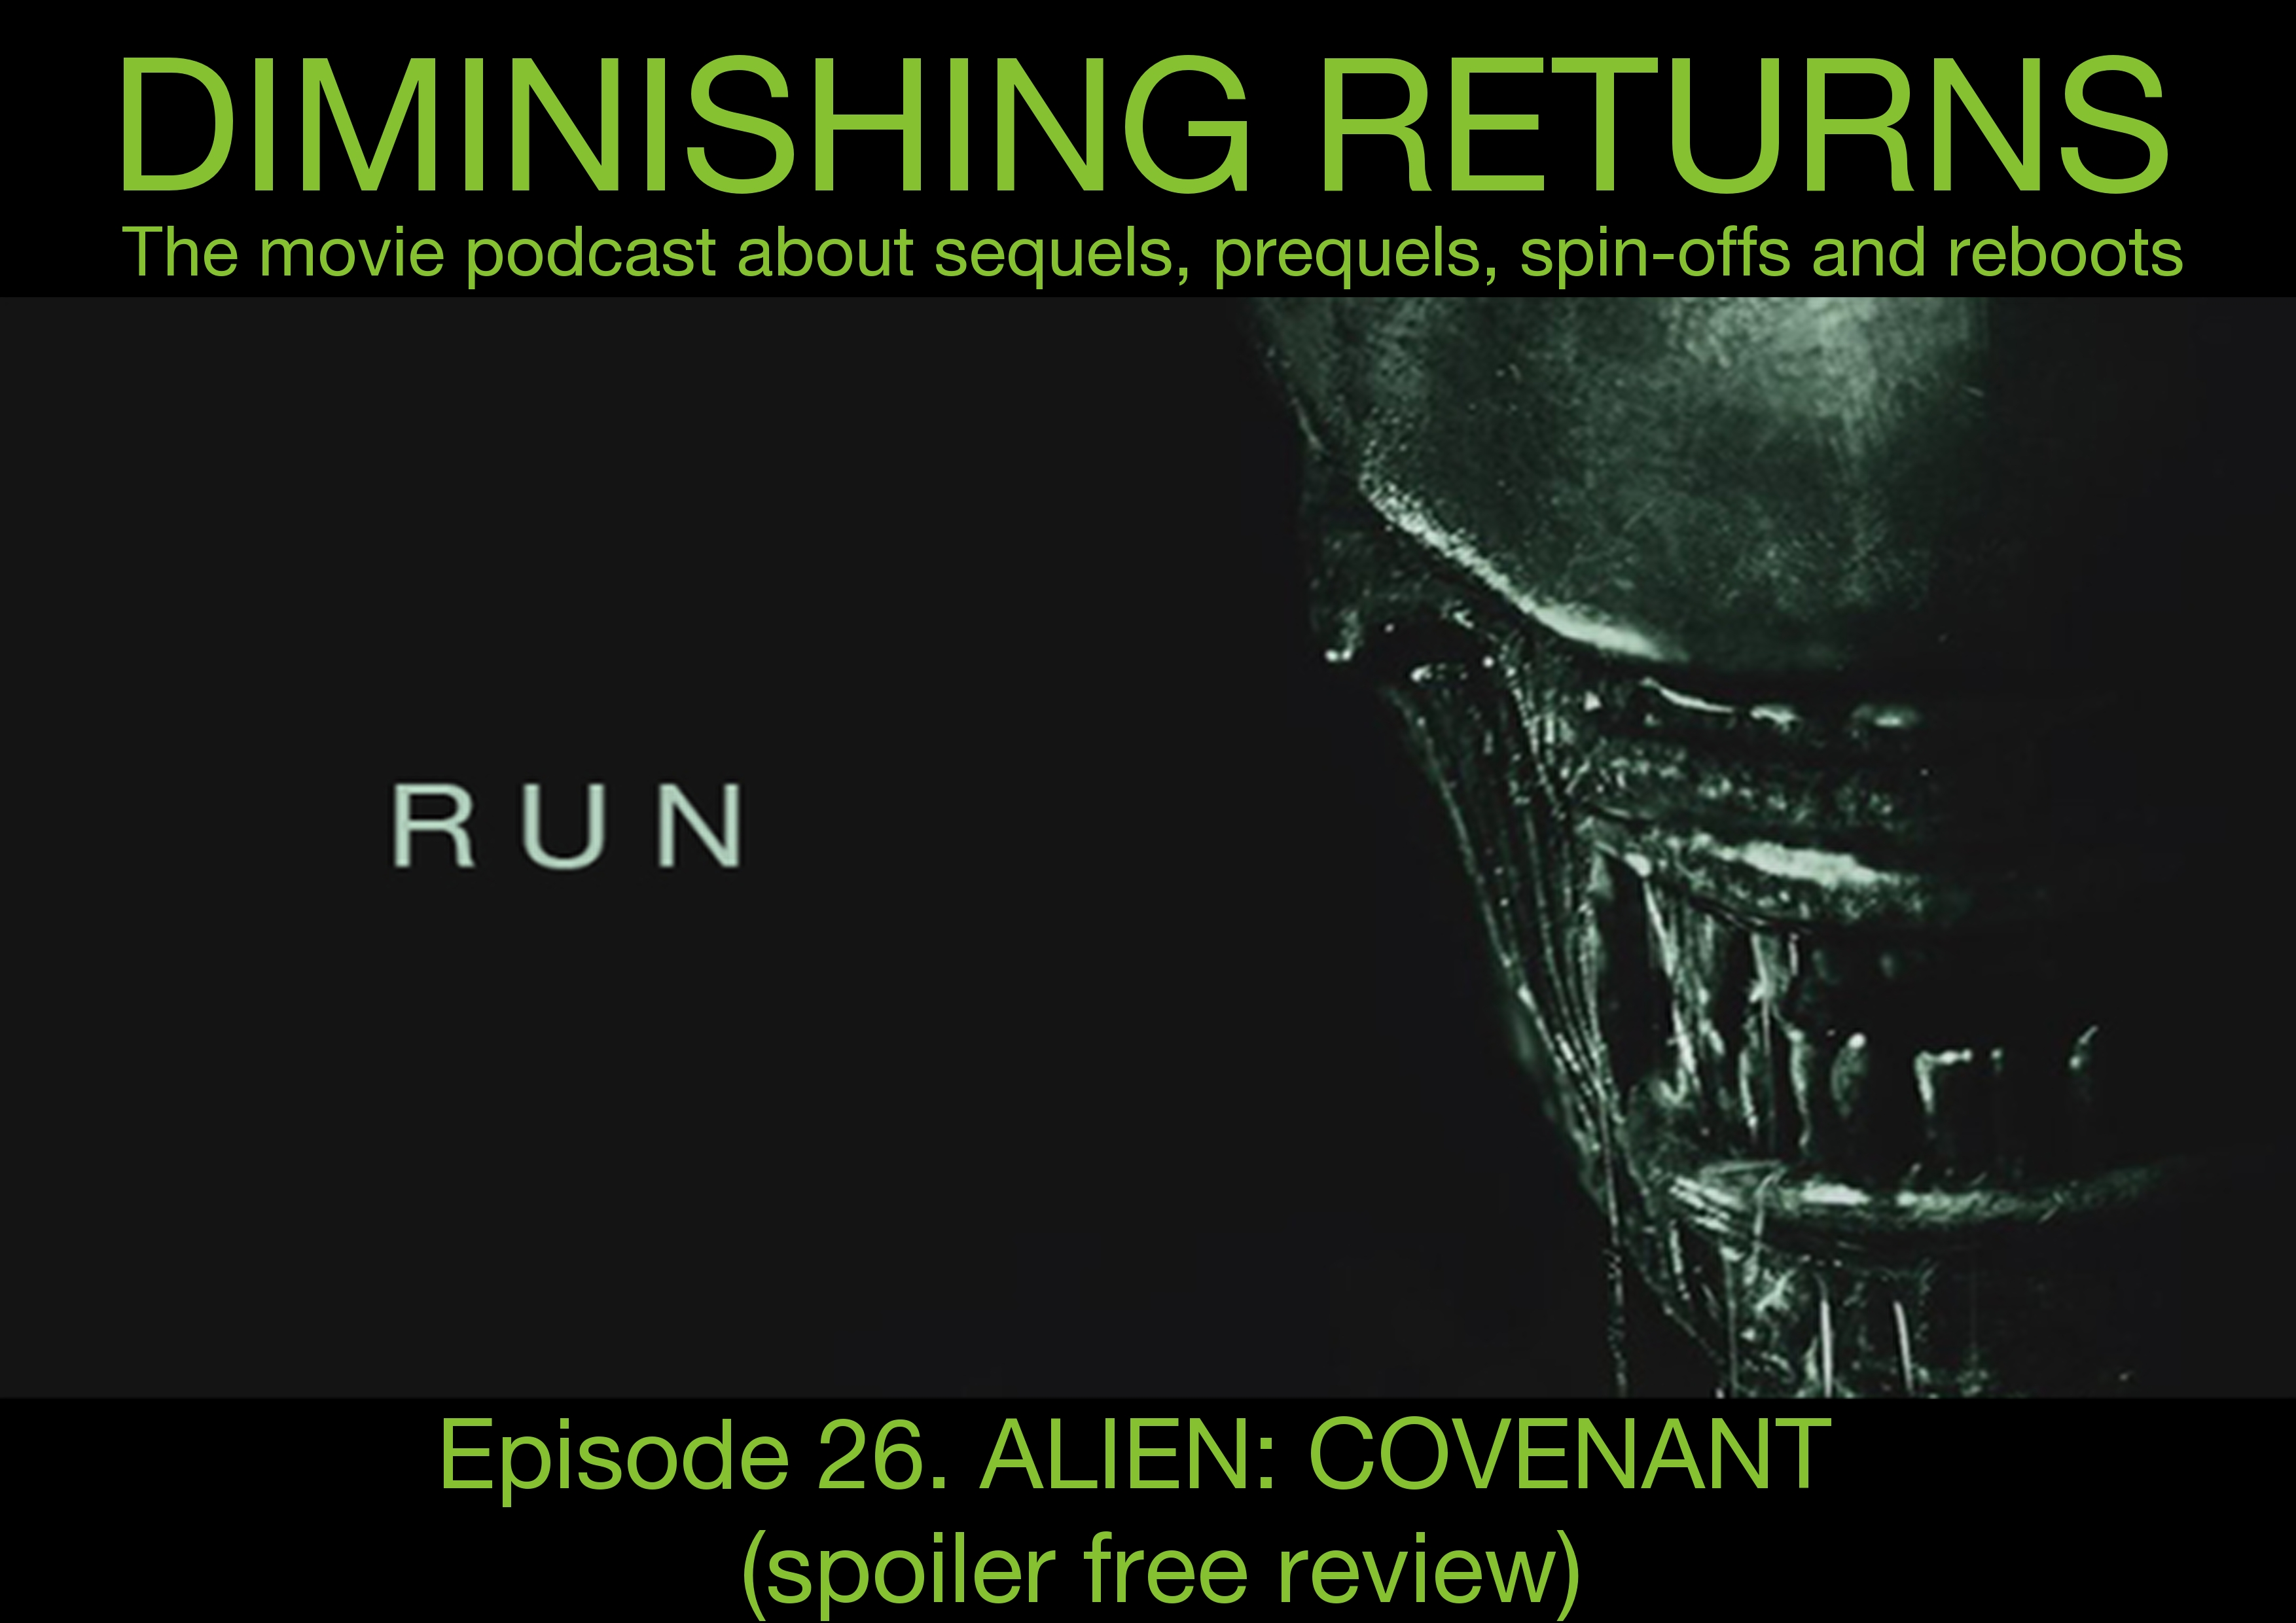 Diminishing Returns Podcast episode 26 Alien Covenant (spoiler free review)